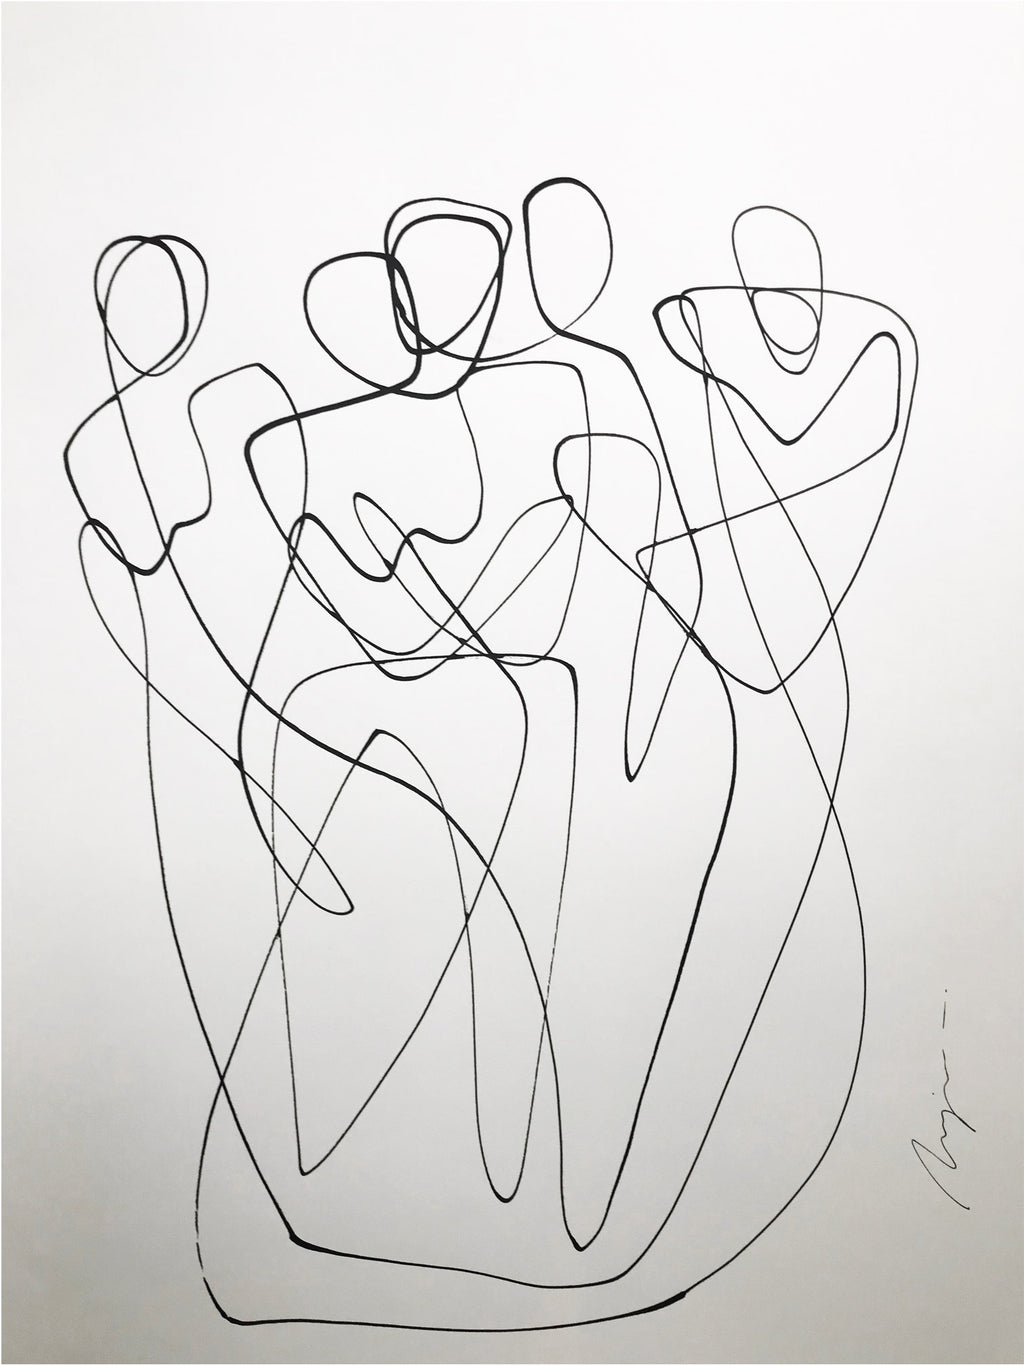 A bond for life I One line I unframed